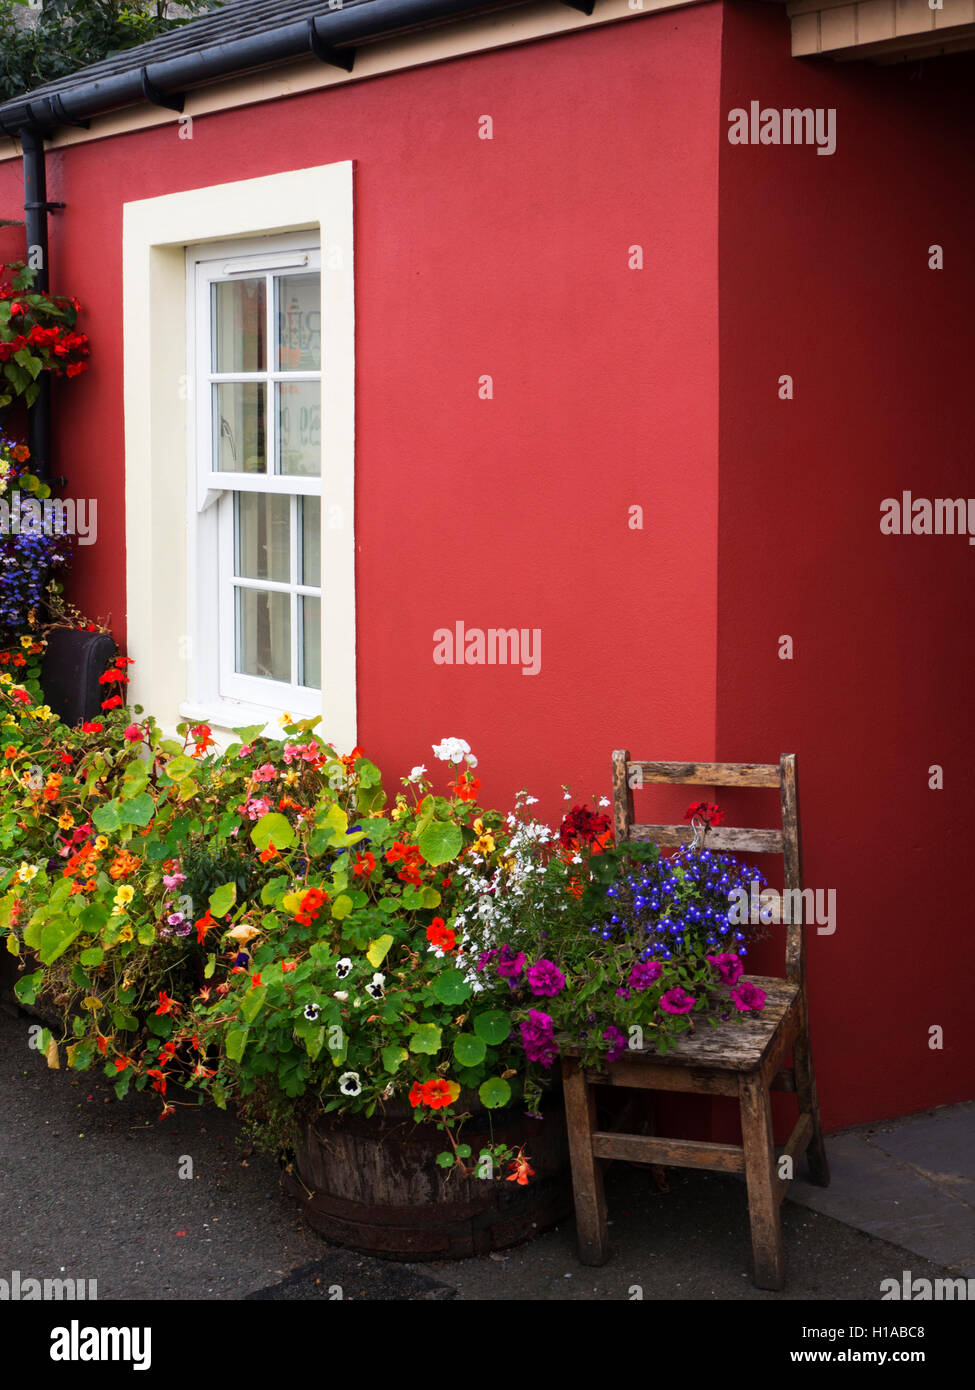 Summer Flowers in Containers outside a House in Tobermory Isle of Mull Argyll and Bute Scotland - Stock Image